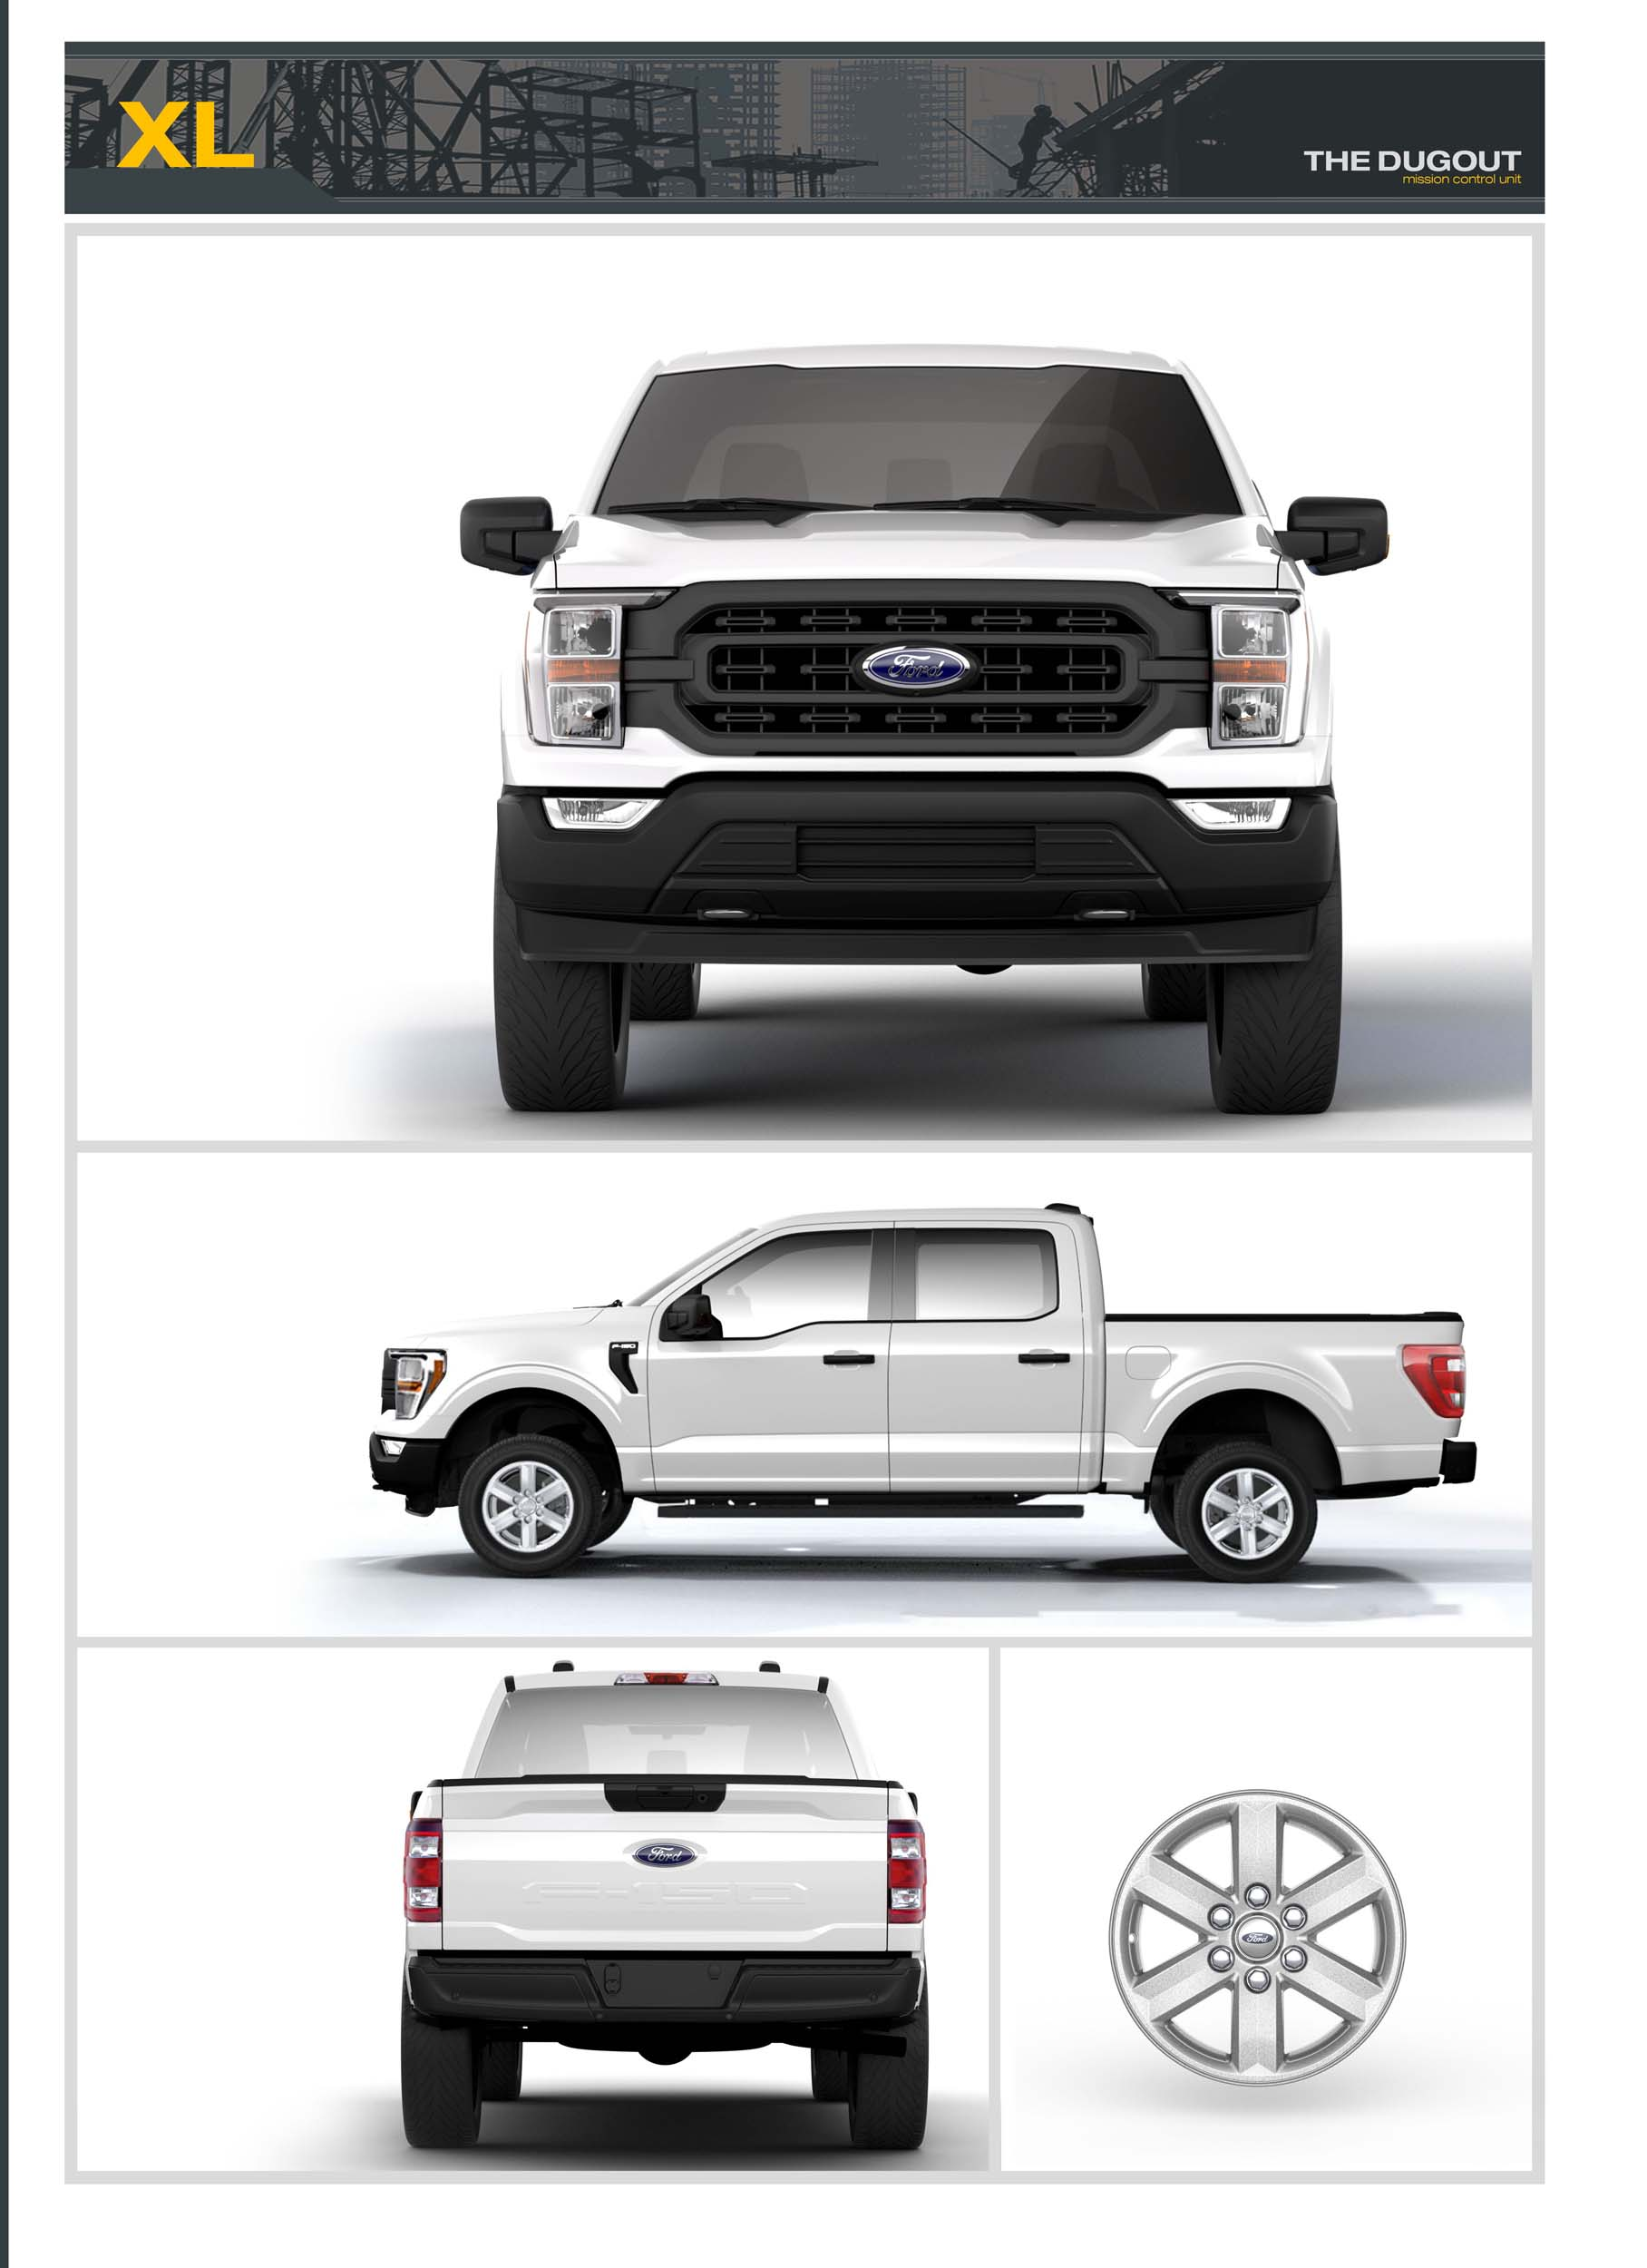 Ford F 150 Ecoboost 0 60 : ecoboost, 2021-ford-F-150-XL-Dugout, Truck